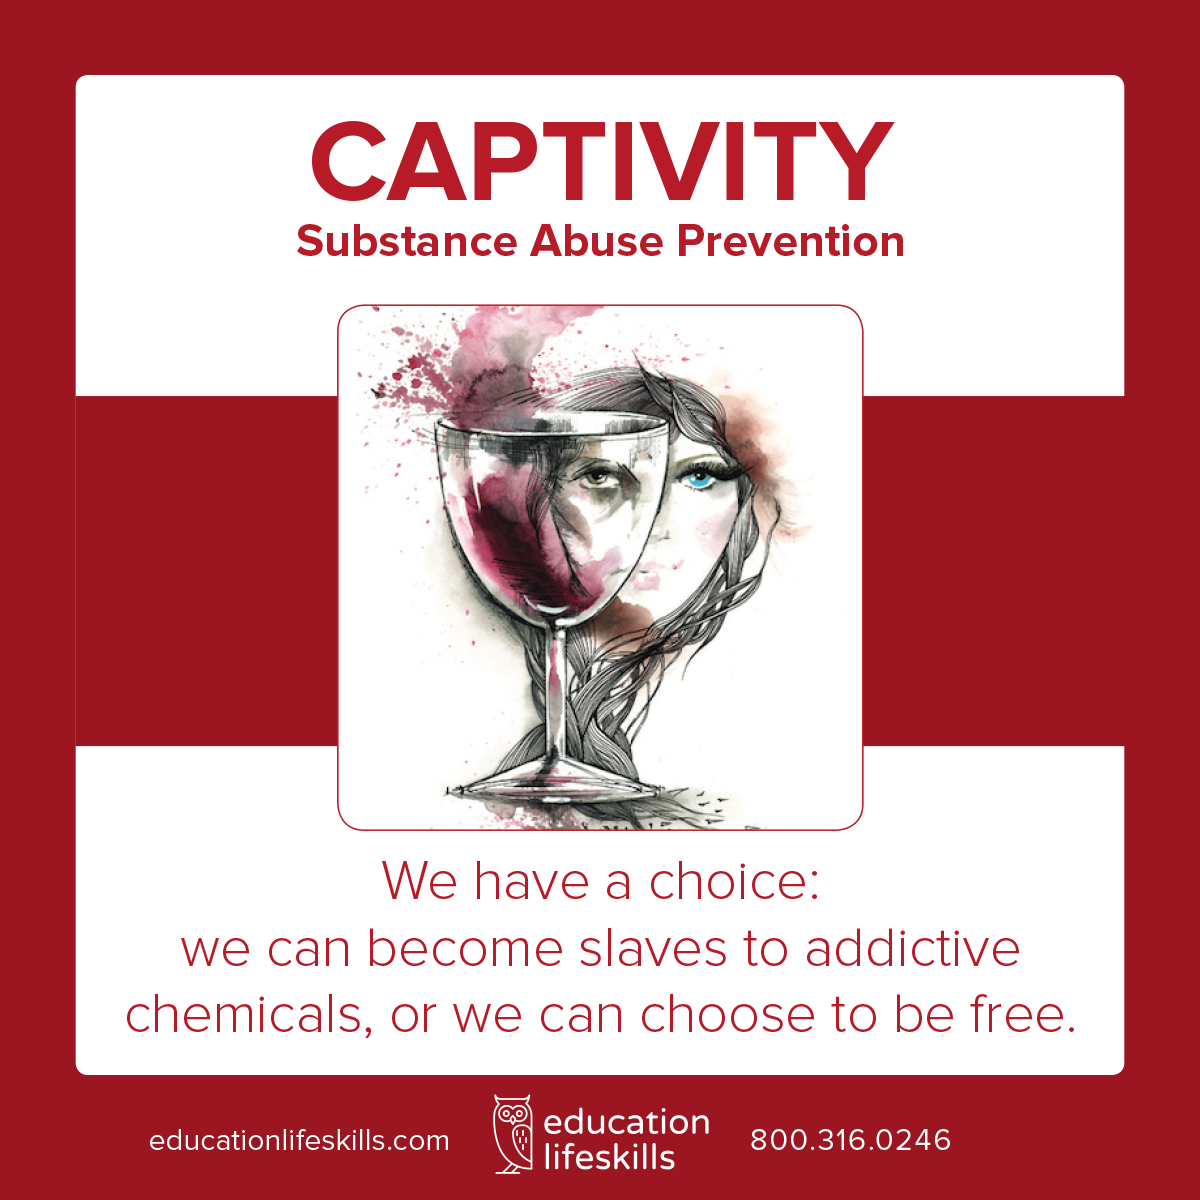 preventing substance abuse Preventing substance abuse combat heroin: learn the signs and how to get help learn how to get rid of medications safely  a comprehensive initiative to fight drug overdose in our area  quick links medication disposal resources news and events reports.